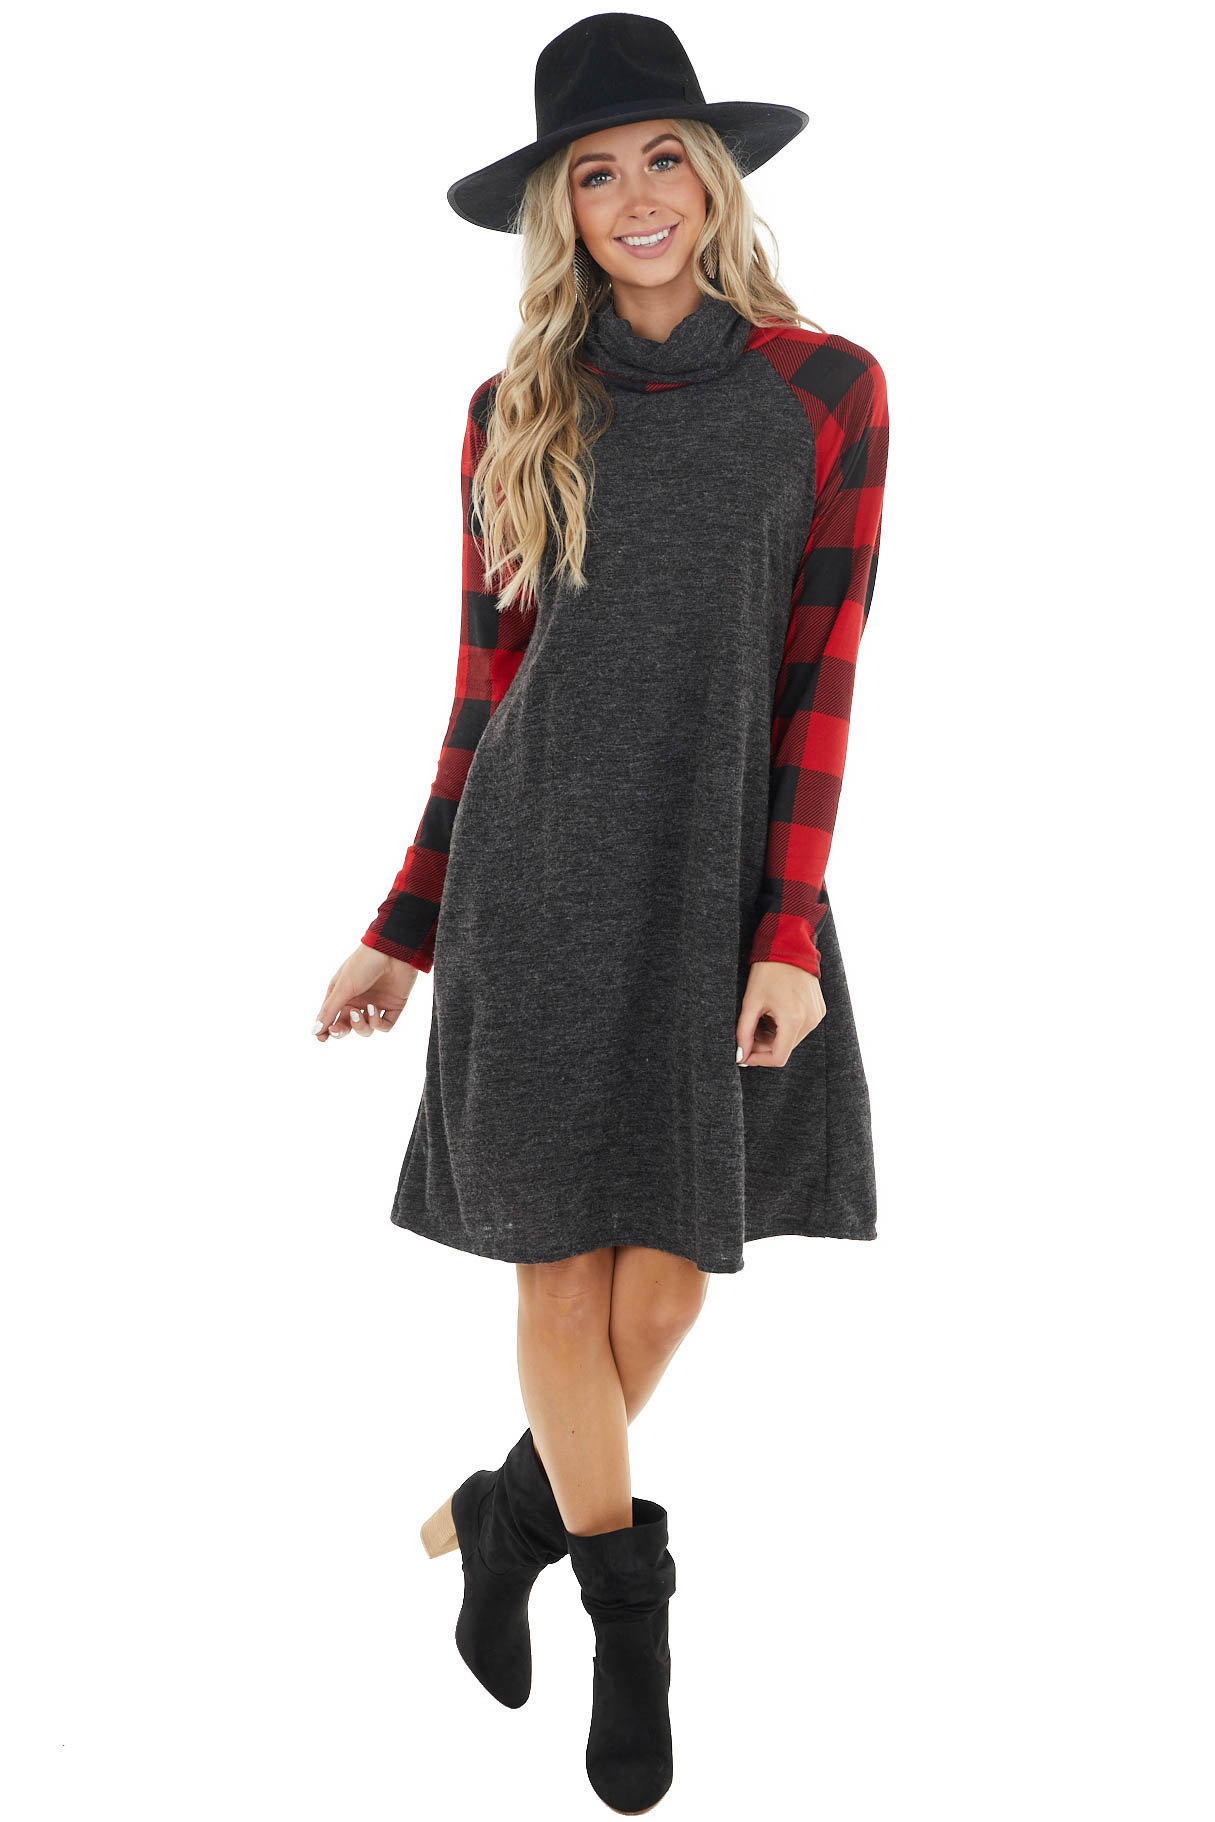 Charcoal Grey Turtleneck Dress with Buffalo Plaid Sleeves